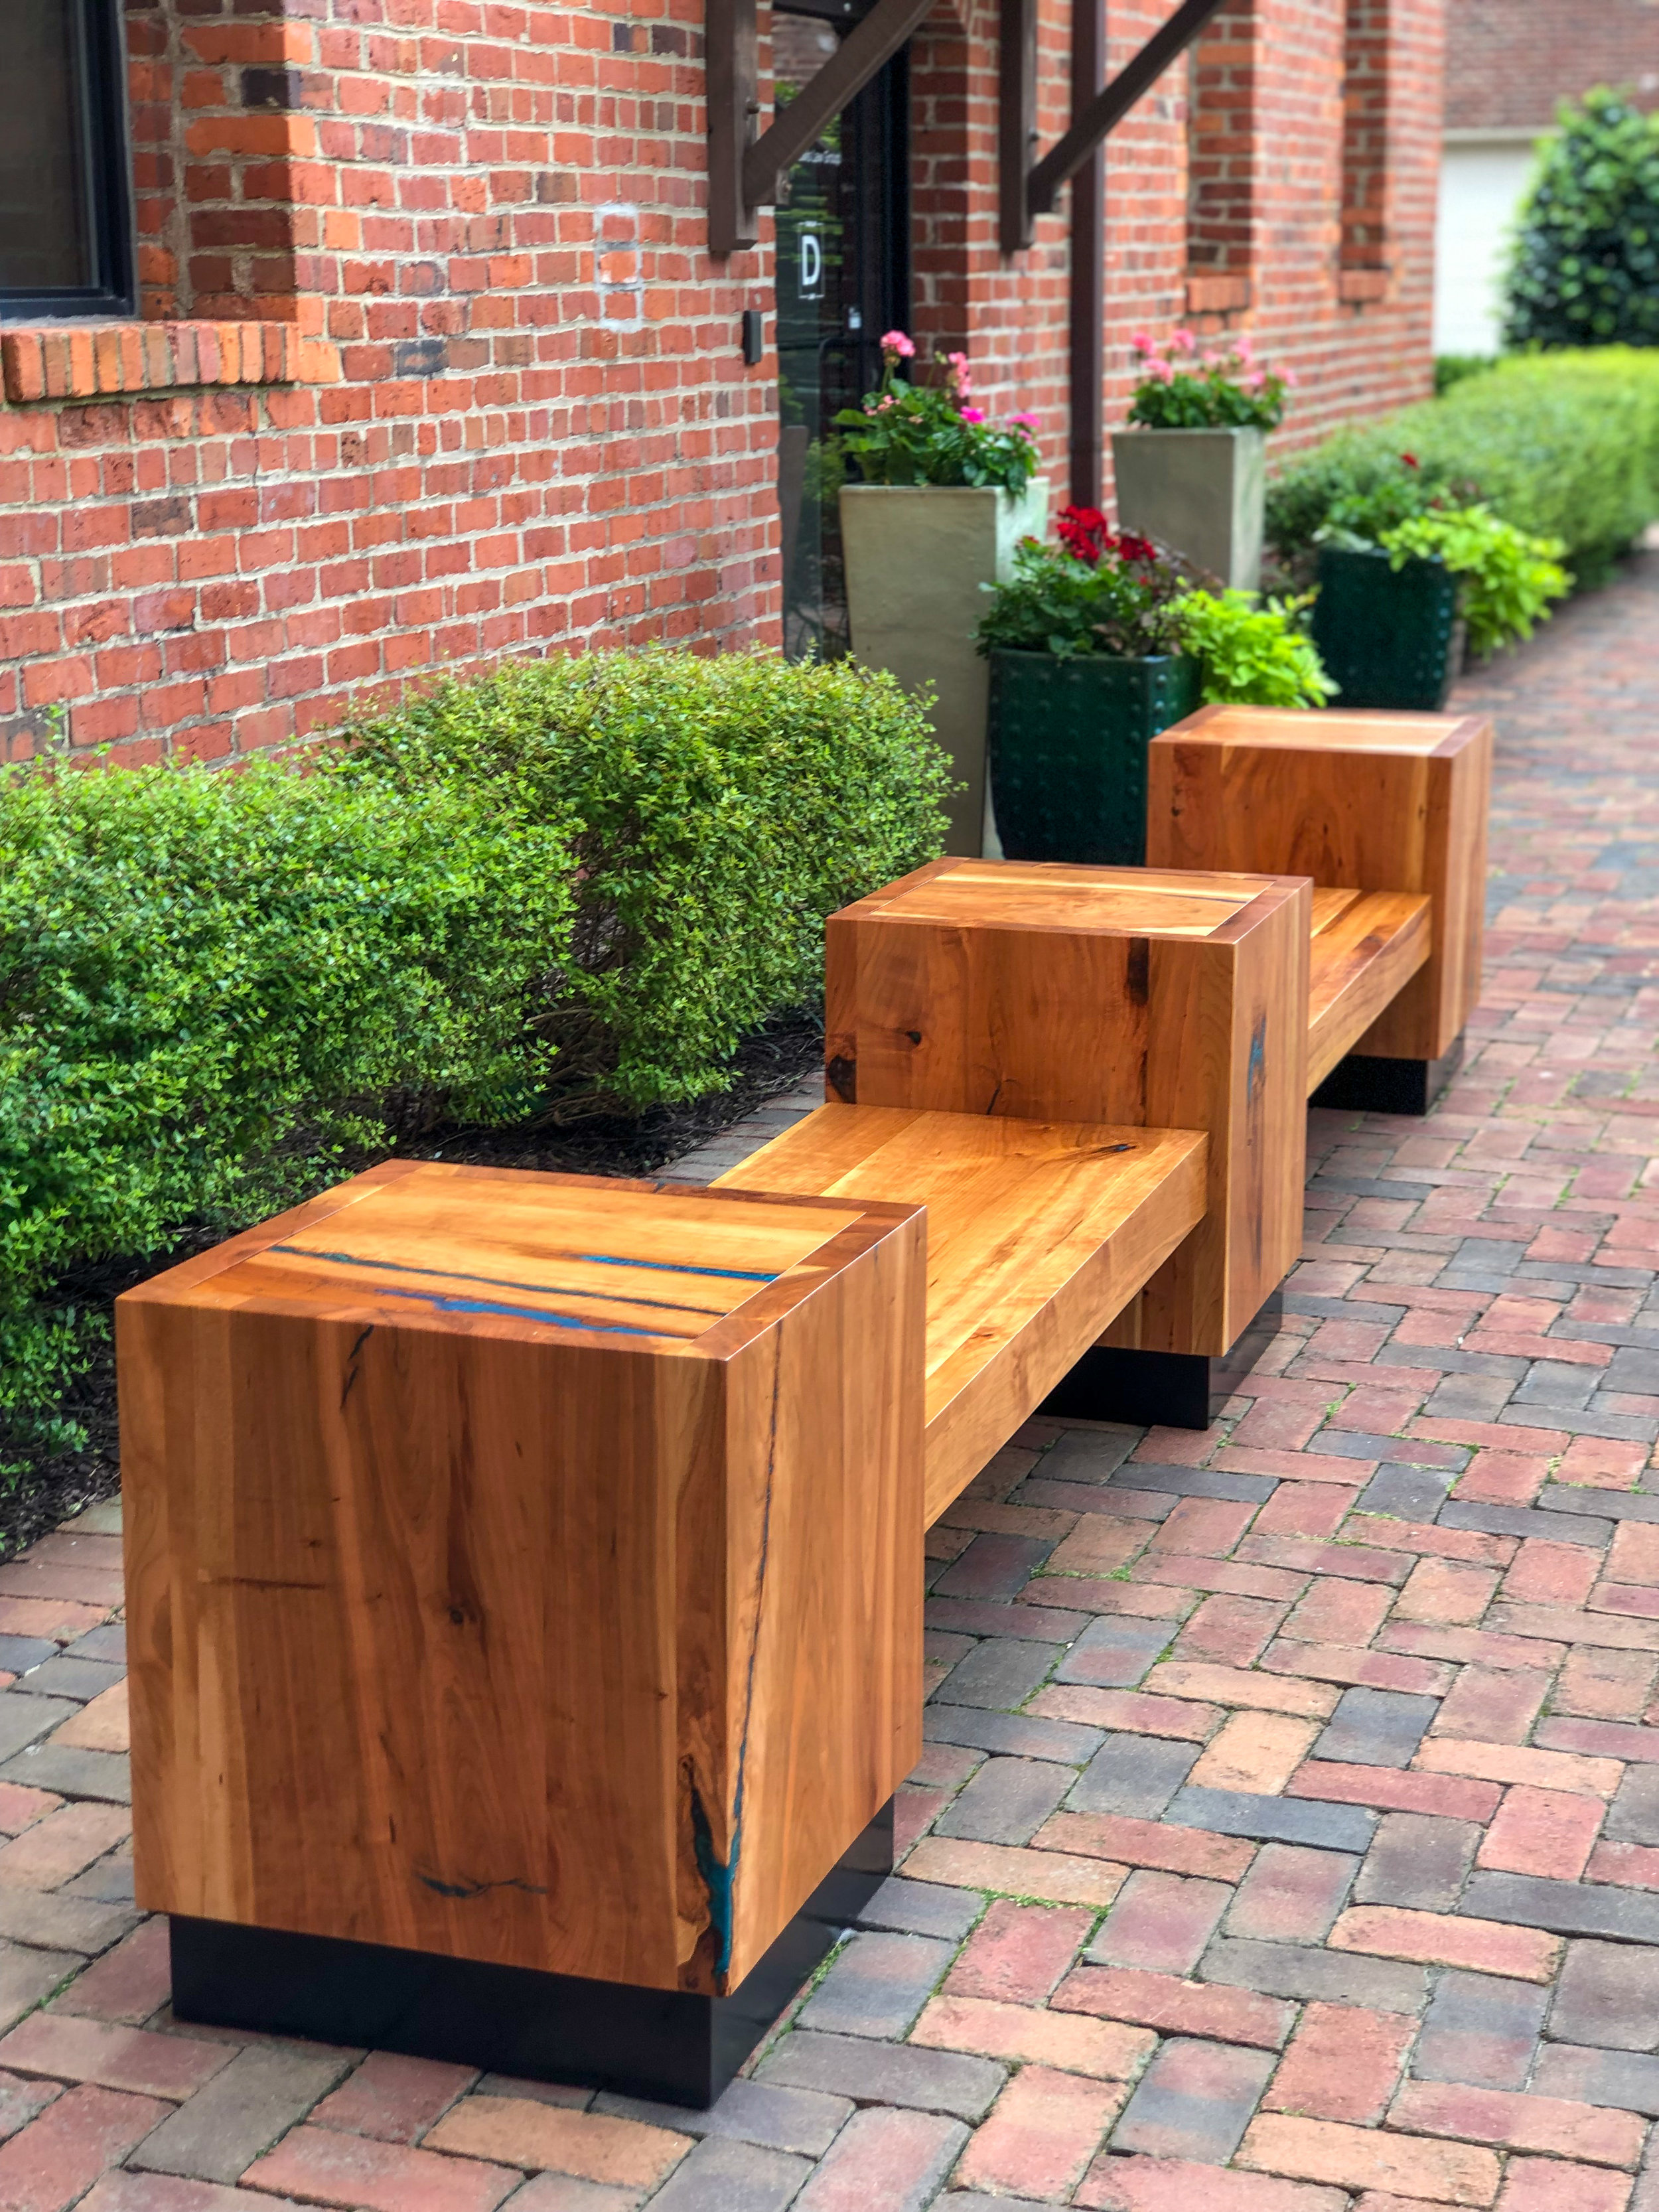 Cherry Benches and Tables in Rocket's Landing, Richmond, Virginia by Sallie Plumley studio.